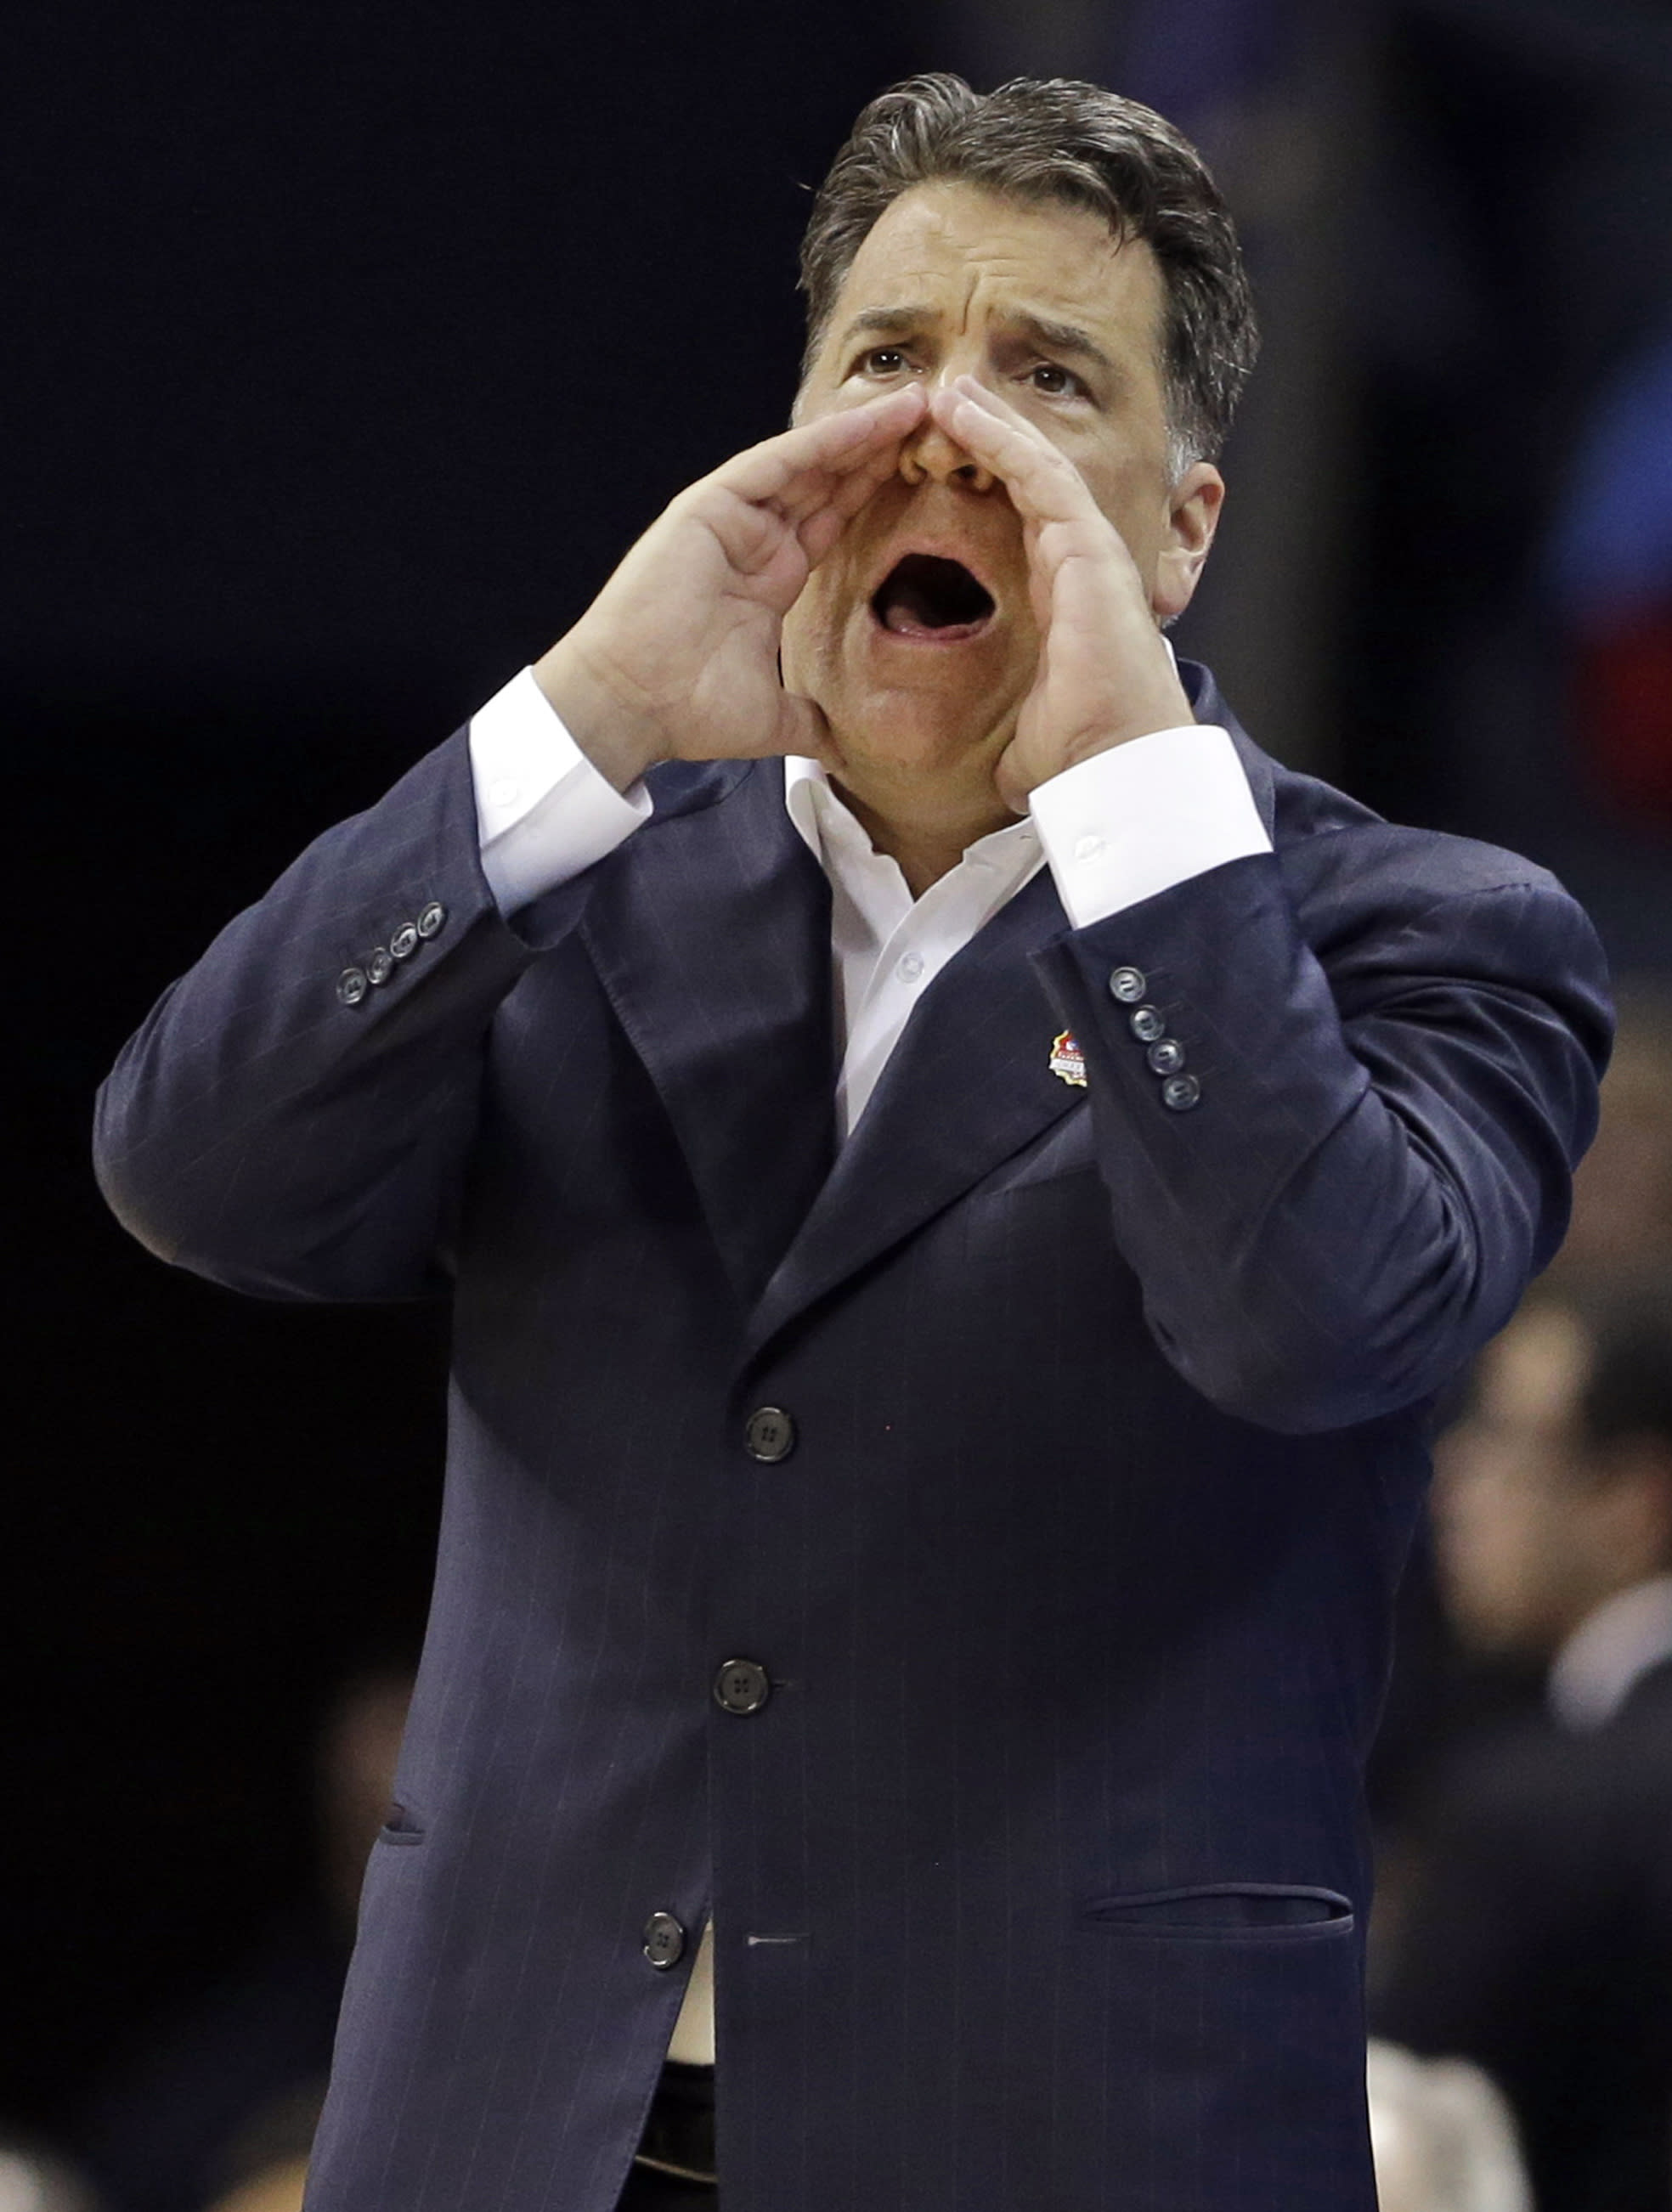 St. John's basketball coach Steve Lavin out after 5 seasons